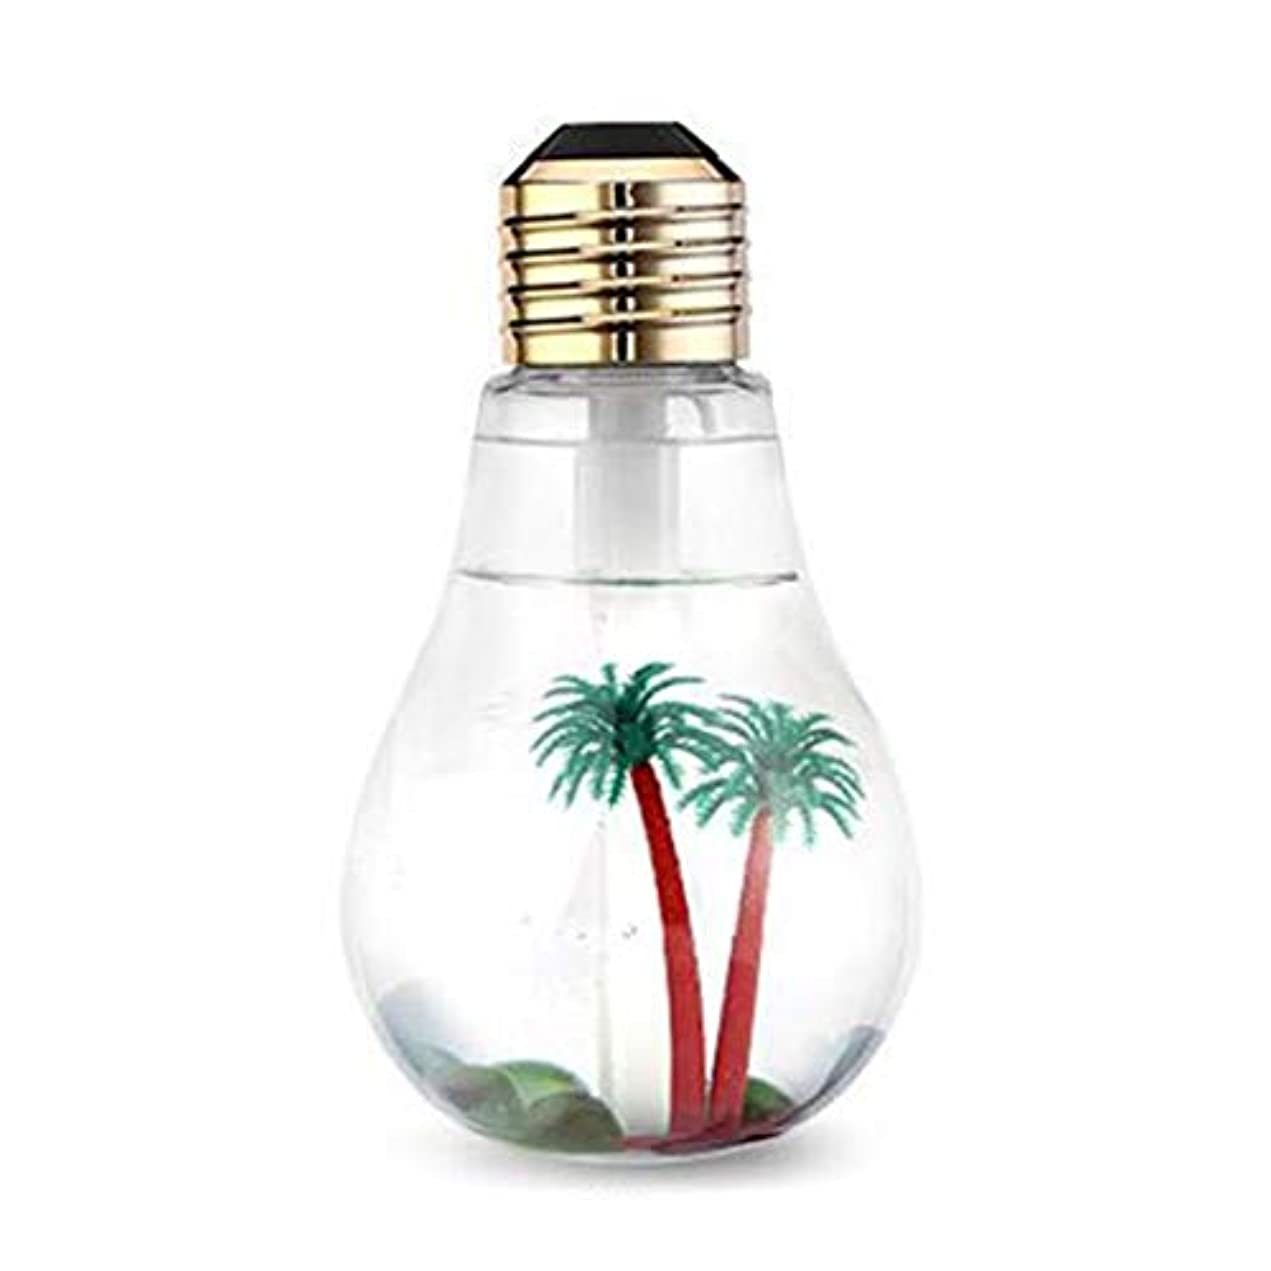 Intercorey Bulb-shaped Air Ultrasonic Humidifier For Home Essential Oil Diffuser Atomizer Air Freshener Mist Maker...